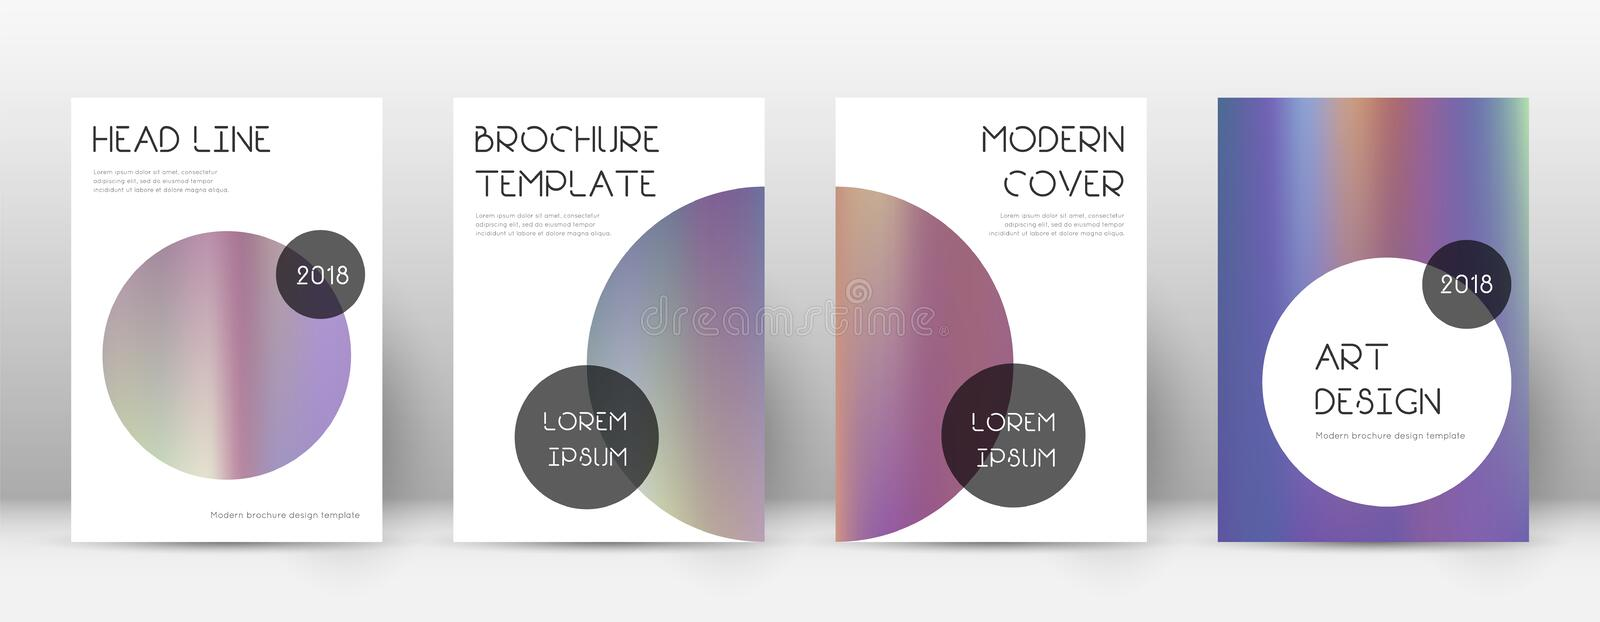 Flyer layout. Trendy cool template for Brochure, Annual Report, Magazine, Poster, Corporate Presentation, Portfolio, Flyer. Beauteous bright hologram cover vector illustration